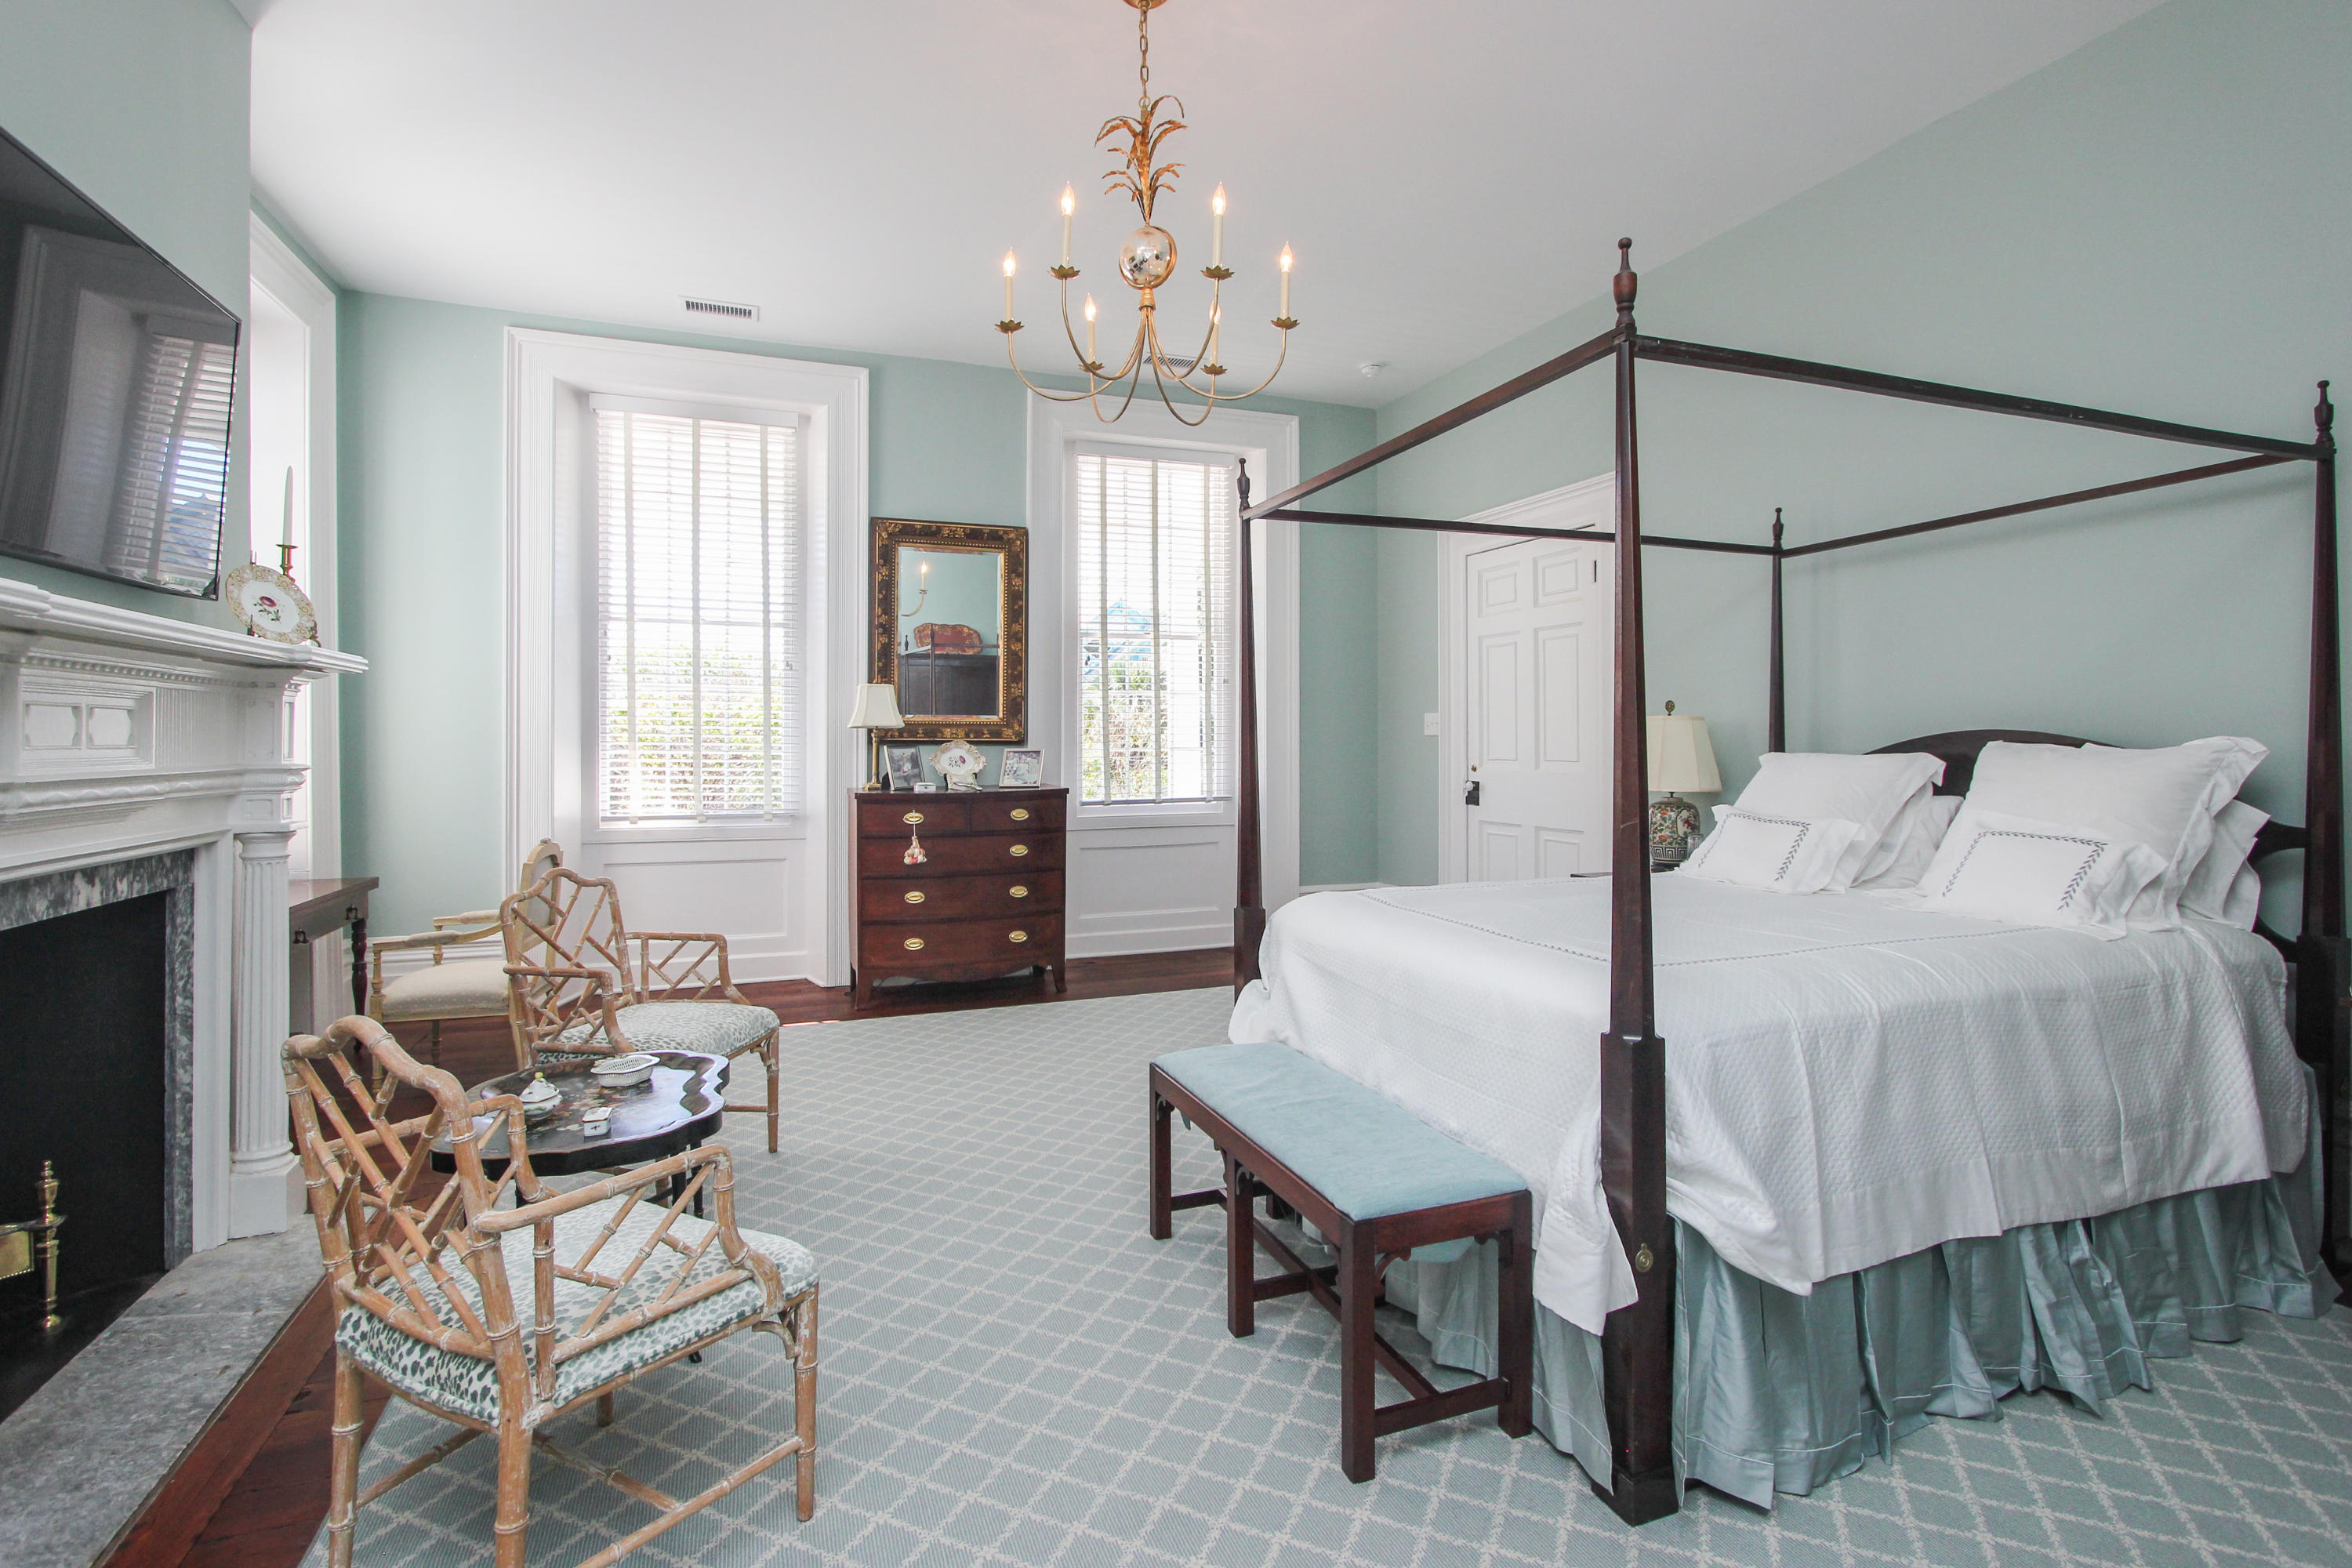 South of Broad Homes For Sale - 44 Battery, Charleston, SC - 87